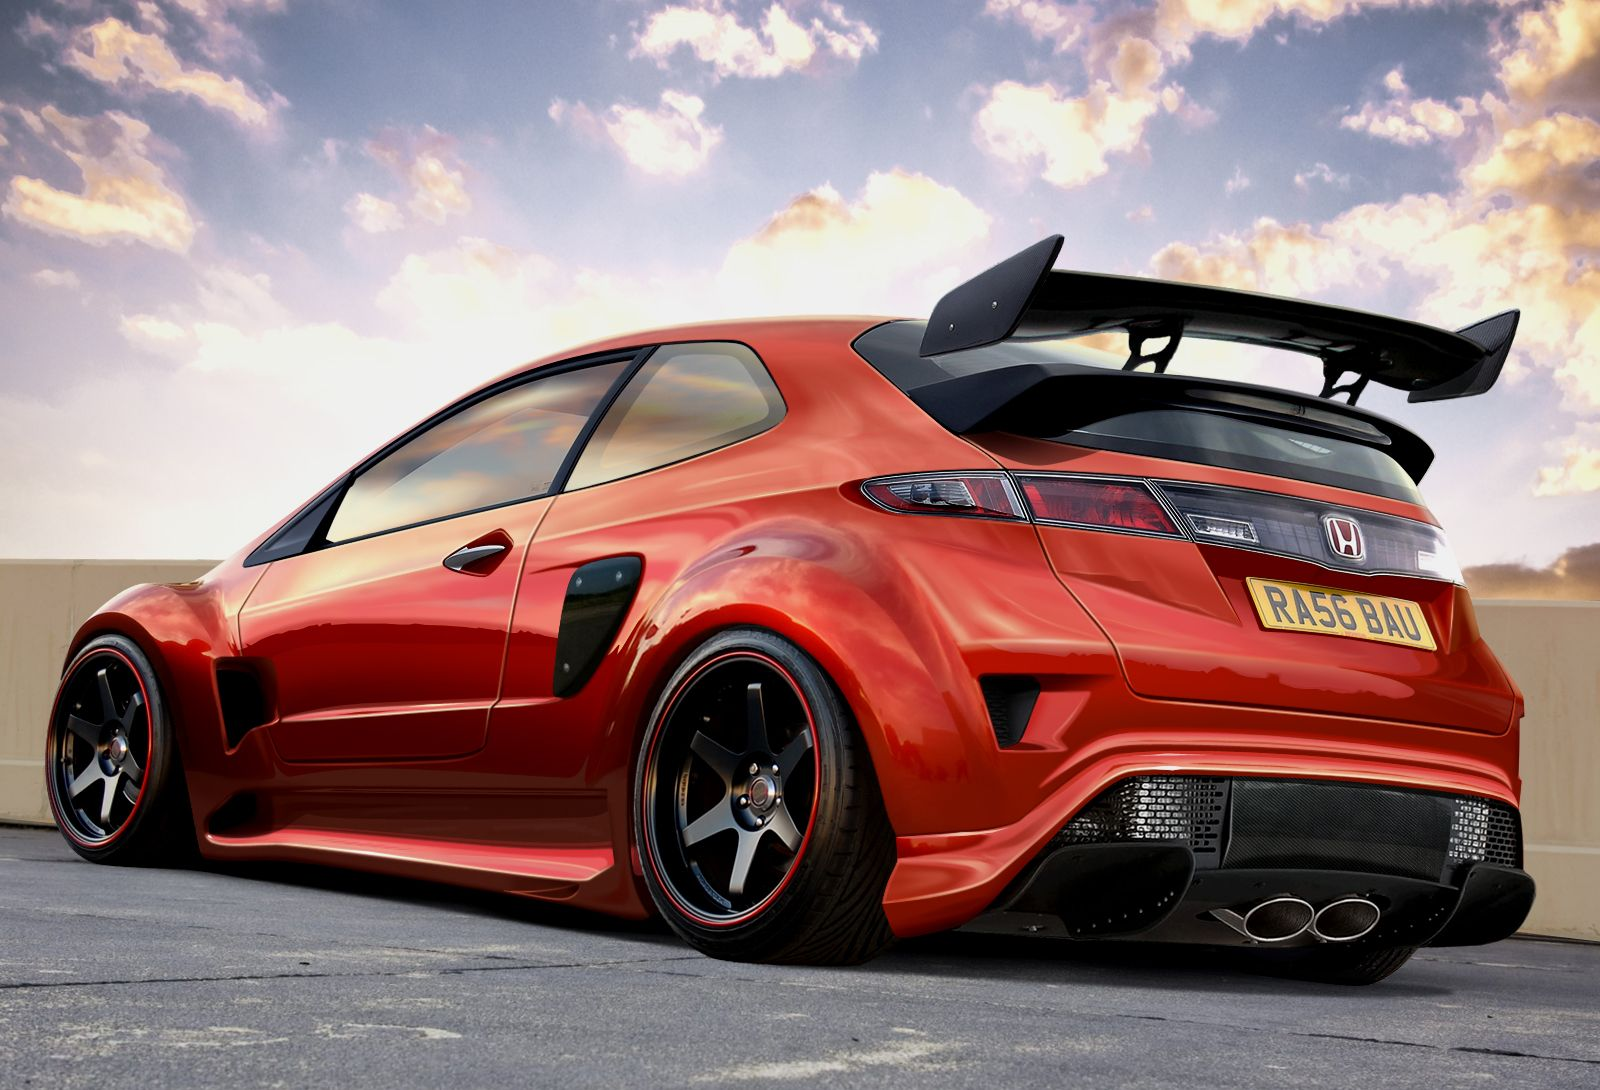 Pin By Dymas Setiawan On Motoring Honda Civic Type R Honda Civic Hatchback Civic Car